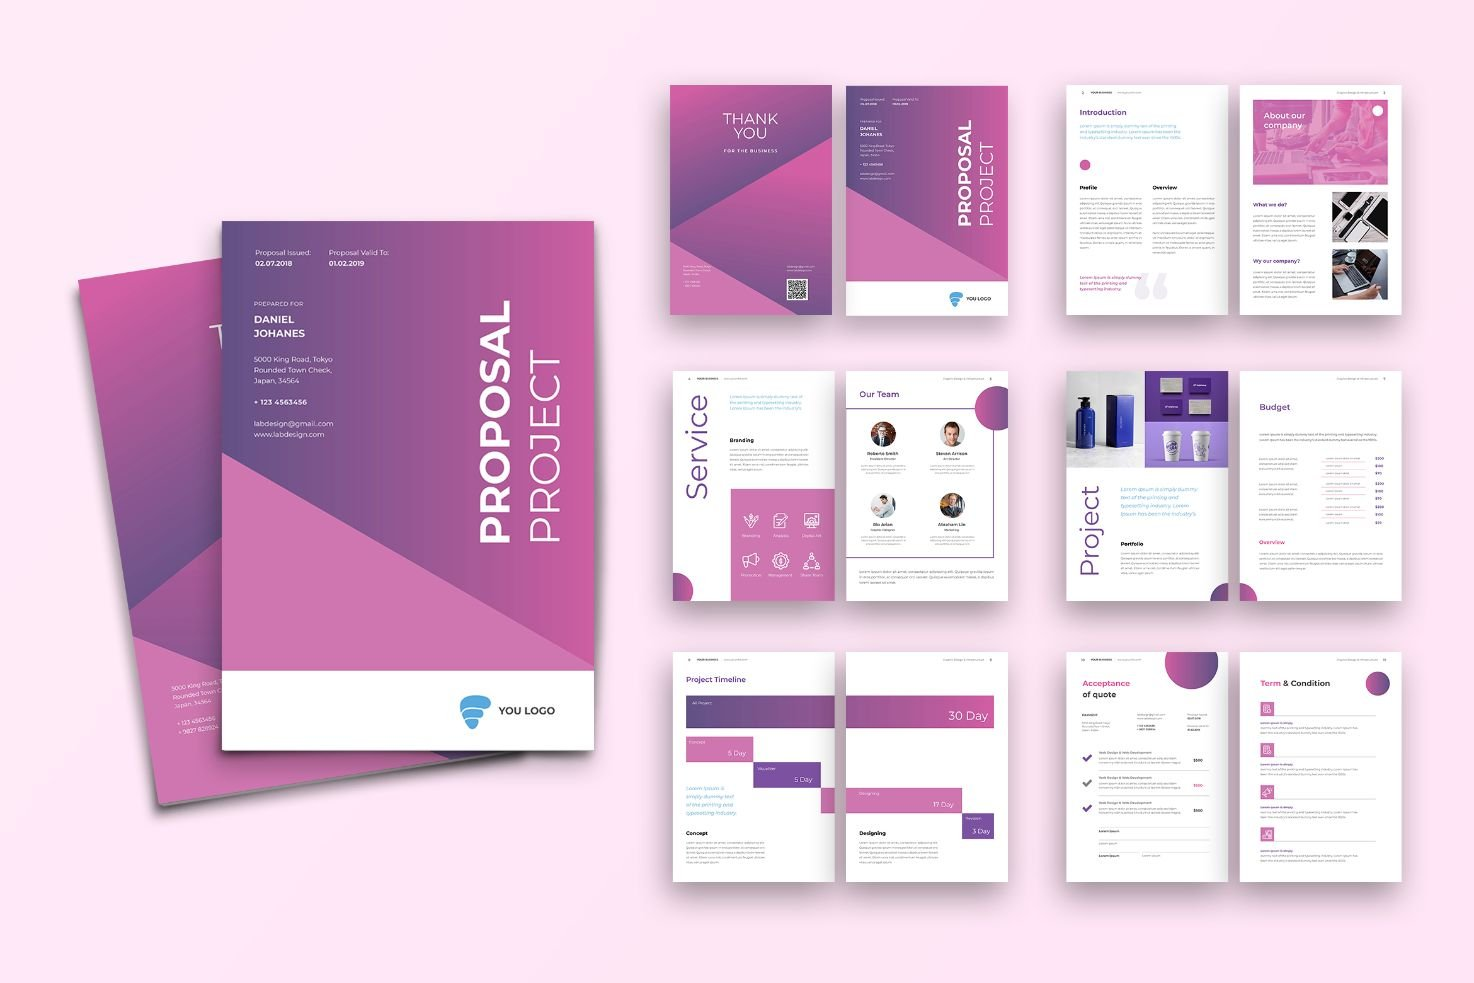 Proposal Management Analysis Product Corporate Identity Template